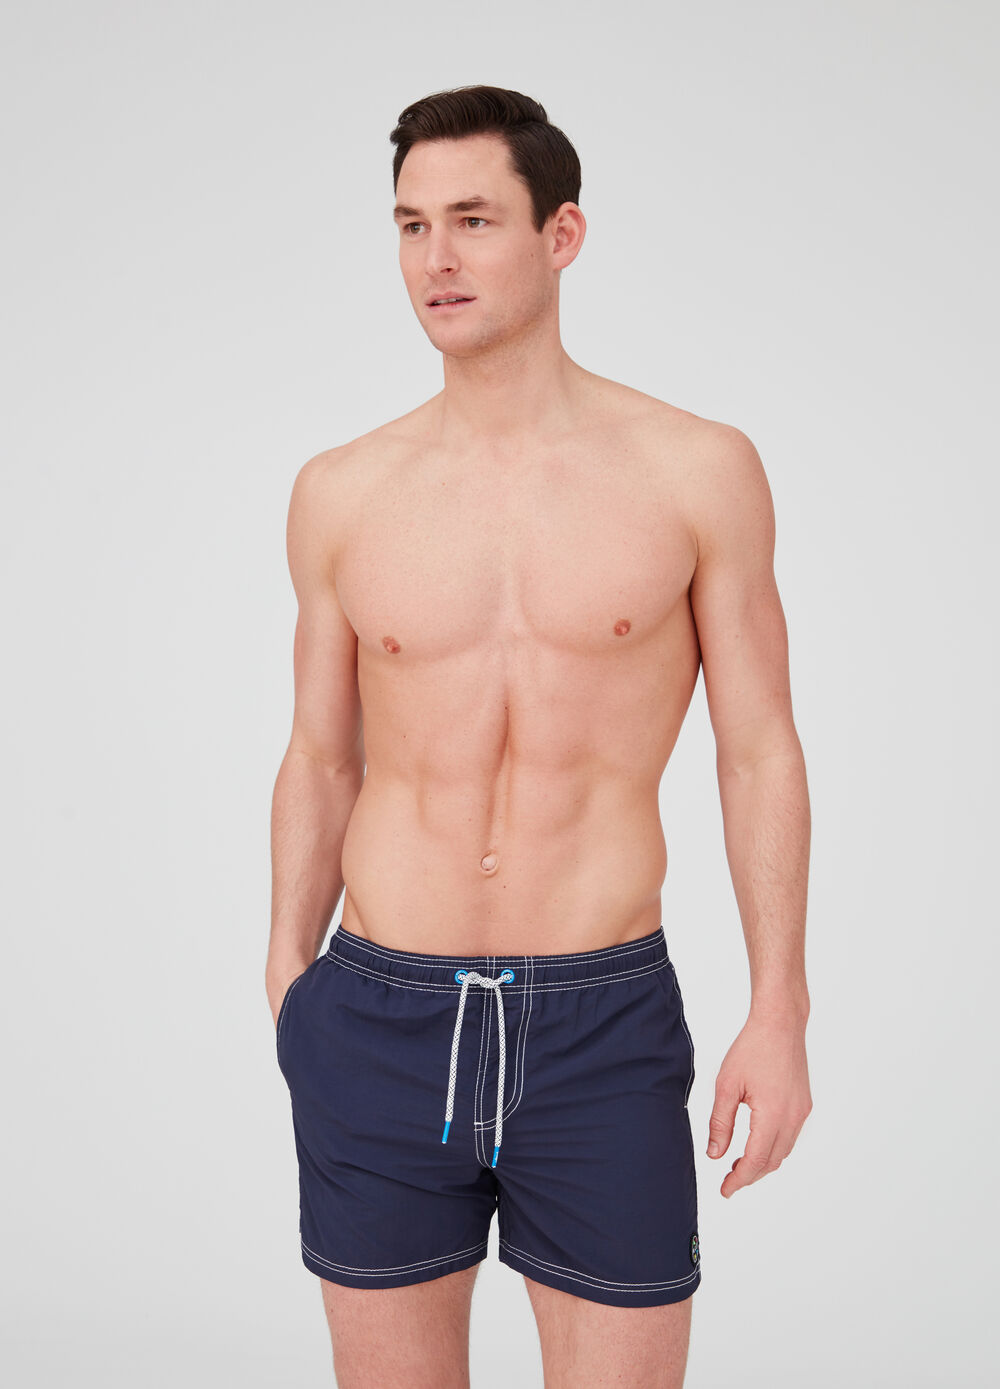 Maui and Sons swim shorts with drawstring